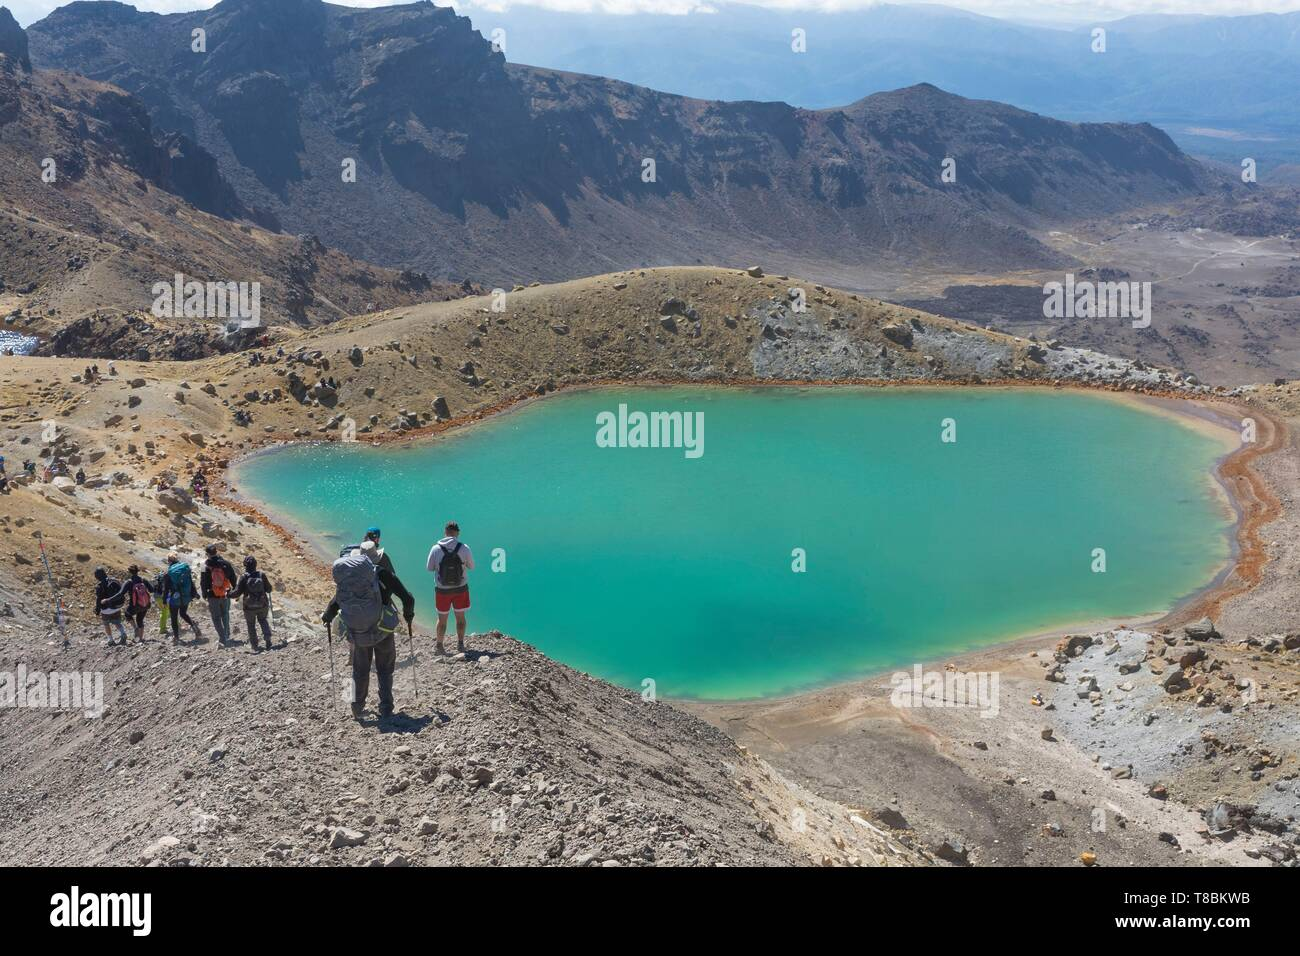 New Zealand, North Island, Waikato region, Tongariro National Park, 1967 m, labelled Unesco World Heritage Site, hikers on the Tongariro Alpine crossing near Emerald Lake - Stock Image